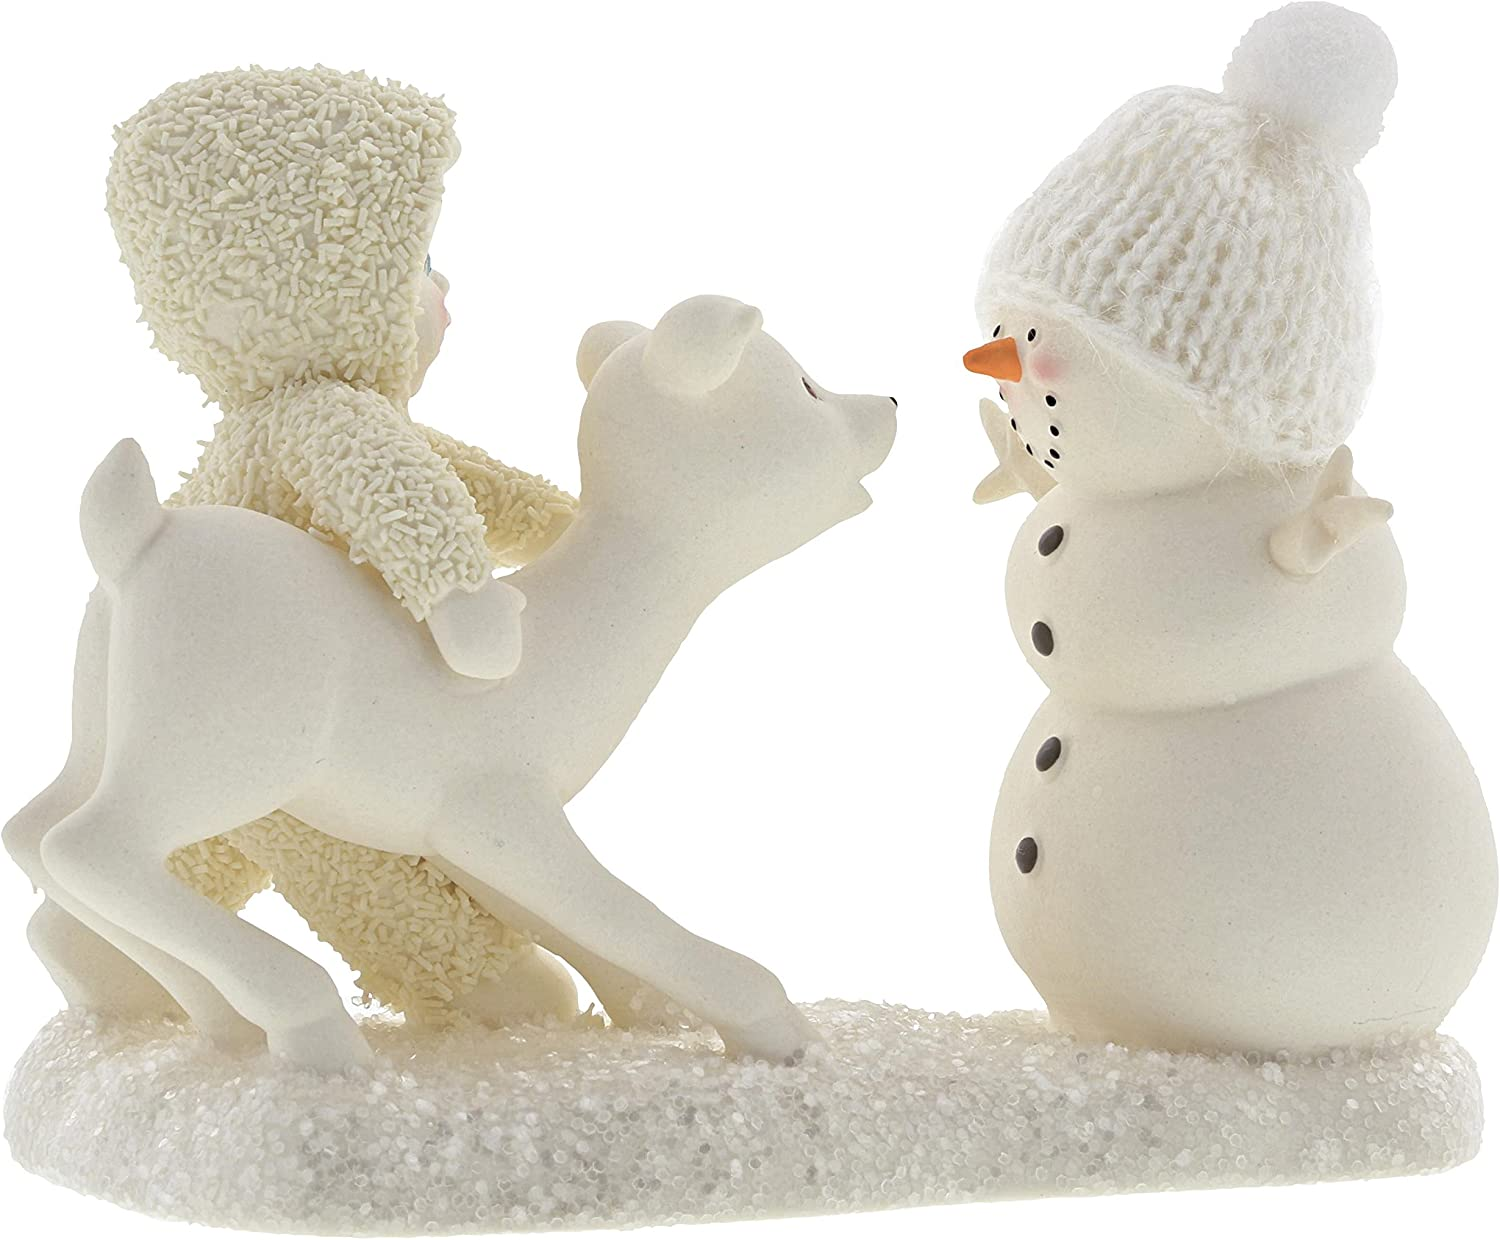 """Department 56 Snowbabies Peace Collection """"Deer Me, Who's That?"""" Porcelain Figurine, 4"""""""